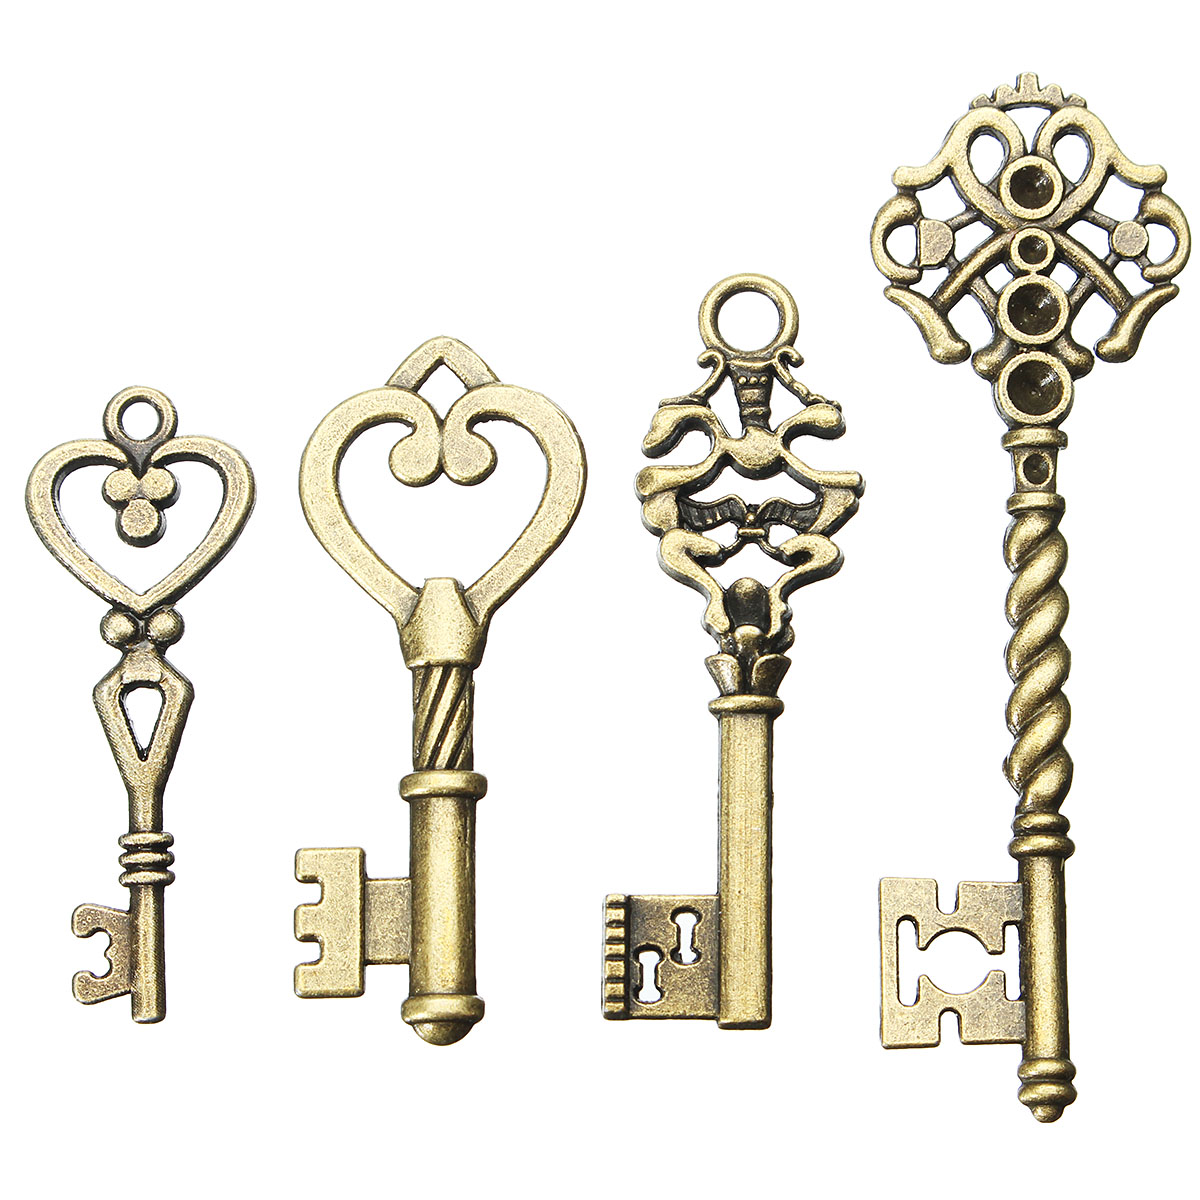 4Pcs Bronze Key Vintage For Pendant Necklace Bracelet DIY Handmade Accessories Decoration